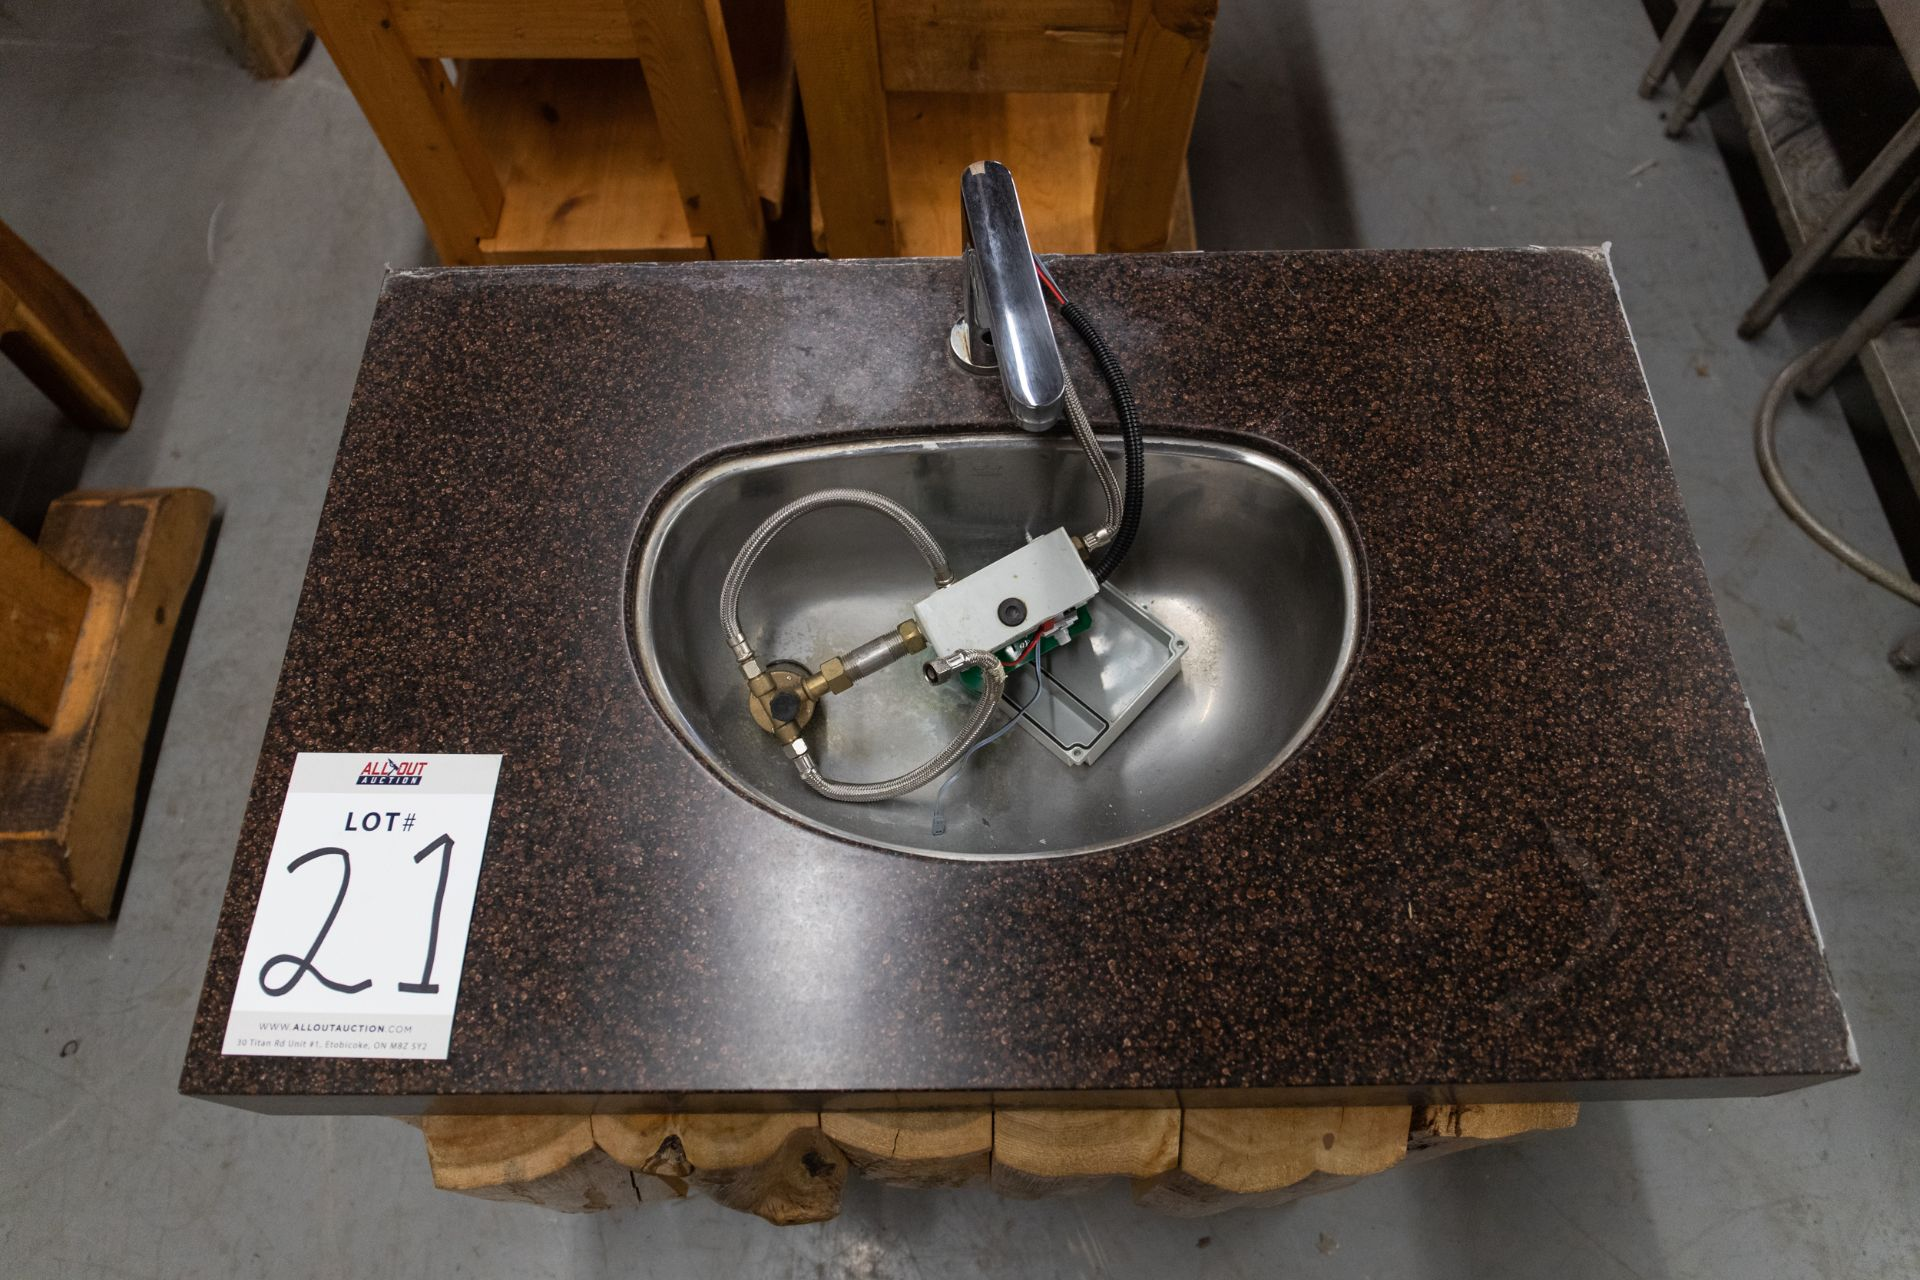 1 FAUCET SINK (TOUCHLESS) WITH STEEL FRAME, CORIAN TOP AND WHITE PINE CLADDING H-32'' W-23'' L-36'' - Image 2 of 5